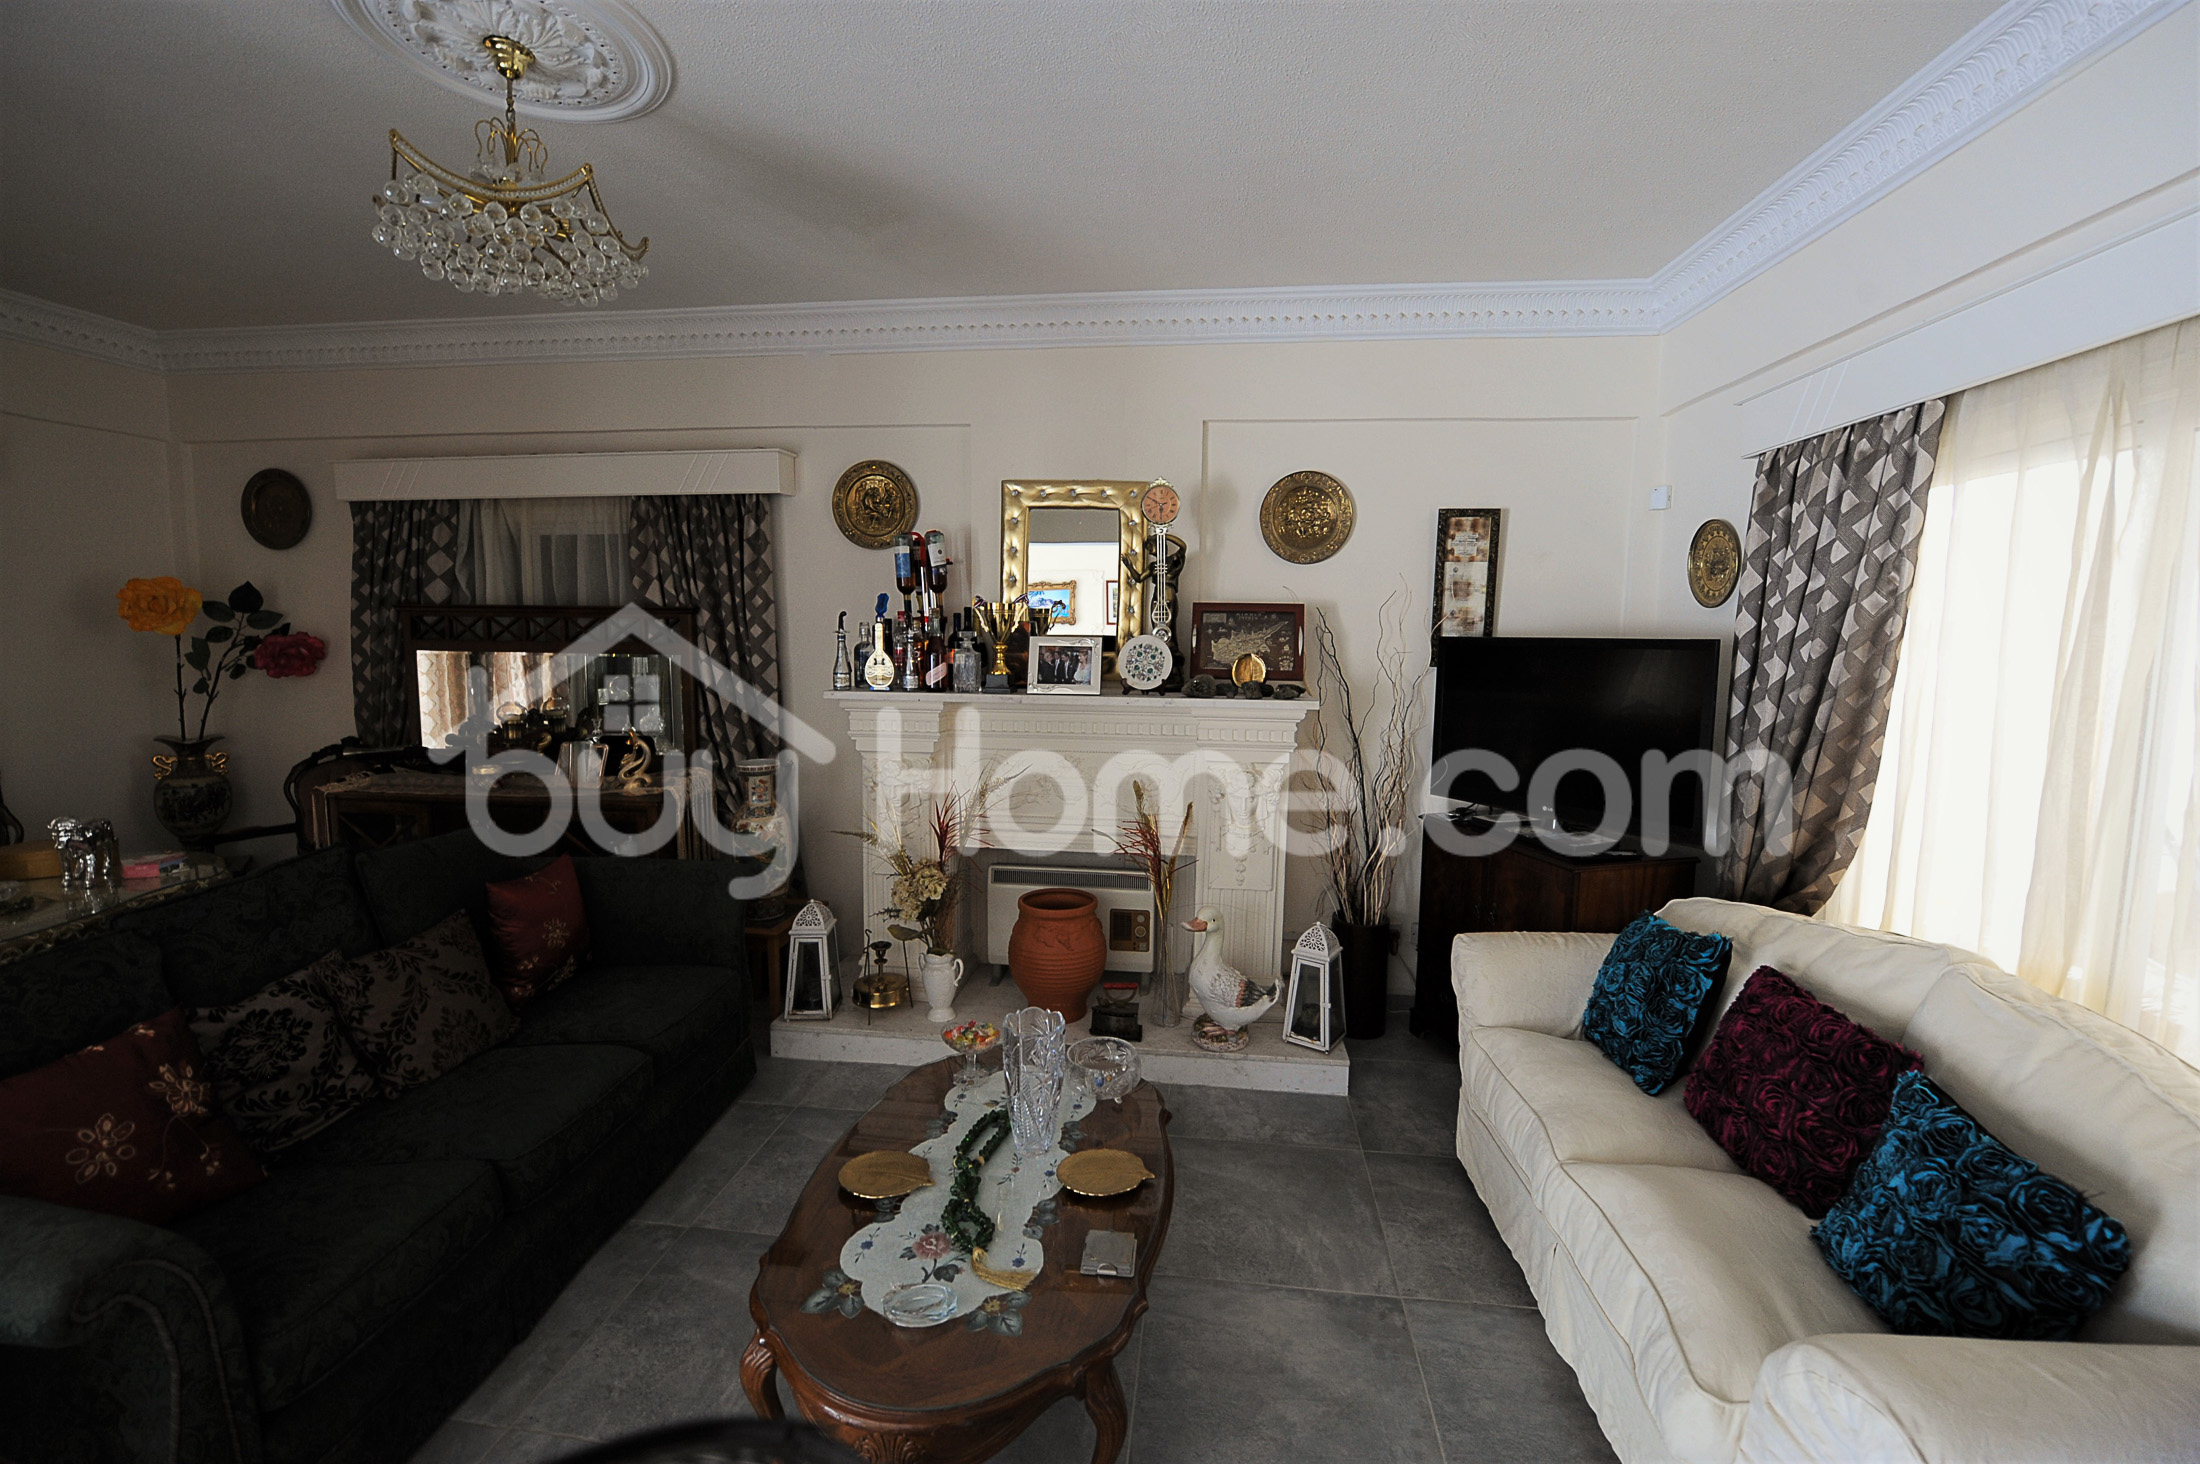 3 Bedroom Semi-Detached house | BuyHome